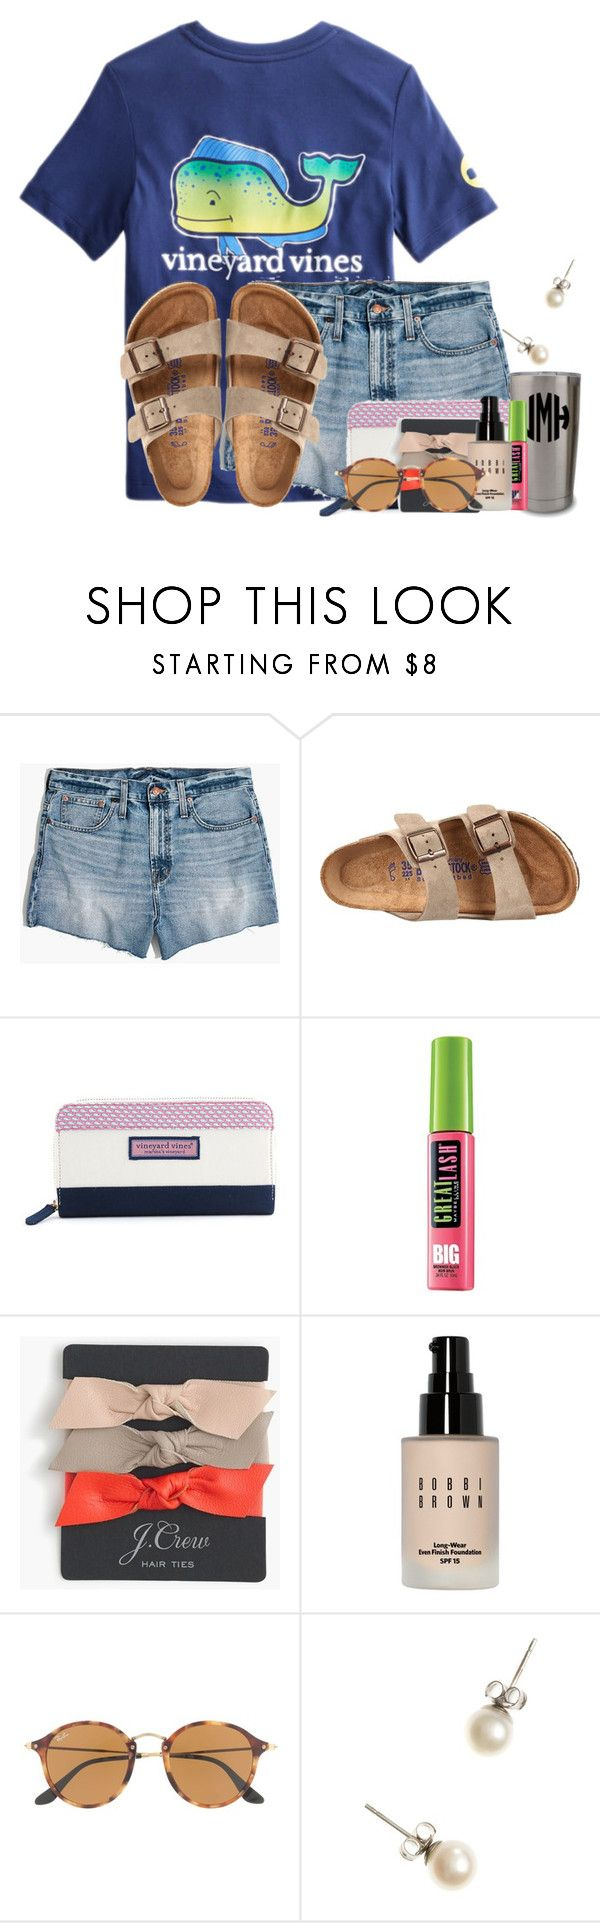 """Exact OOTD for going to the aircraft museum"" by flroasburn ❤ liked on Polyvore featuring Vineyard Vines, Madewell, Birkenstock, Maybelline, J.Crew, Bobbi Brown Cosmetics and Ray-Ban"